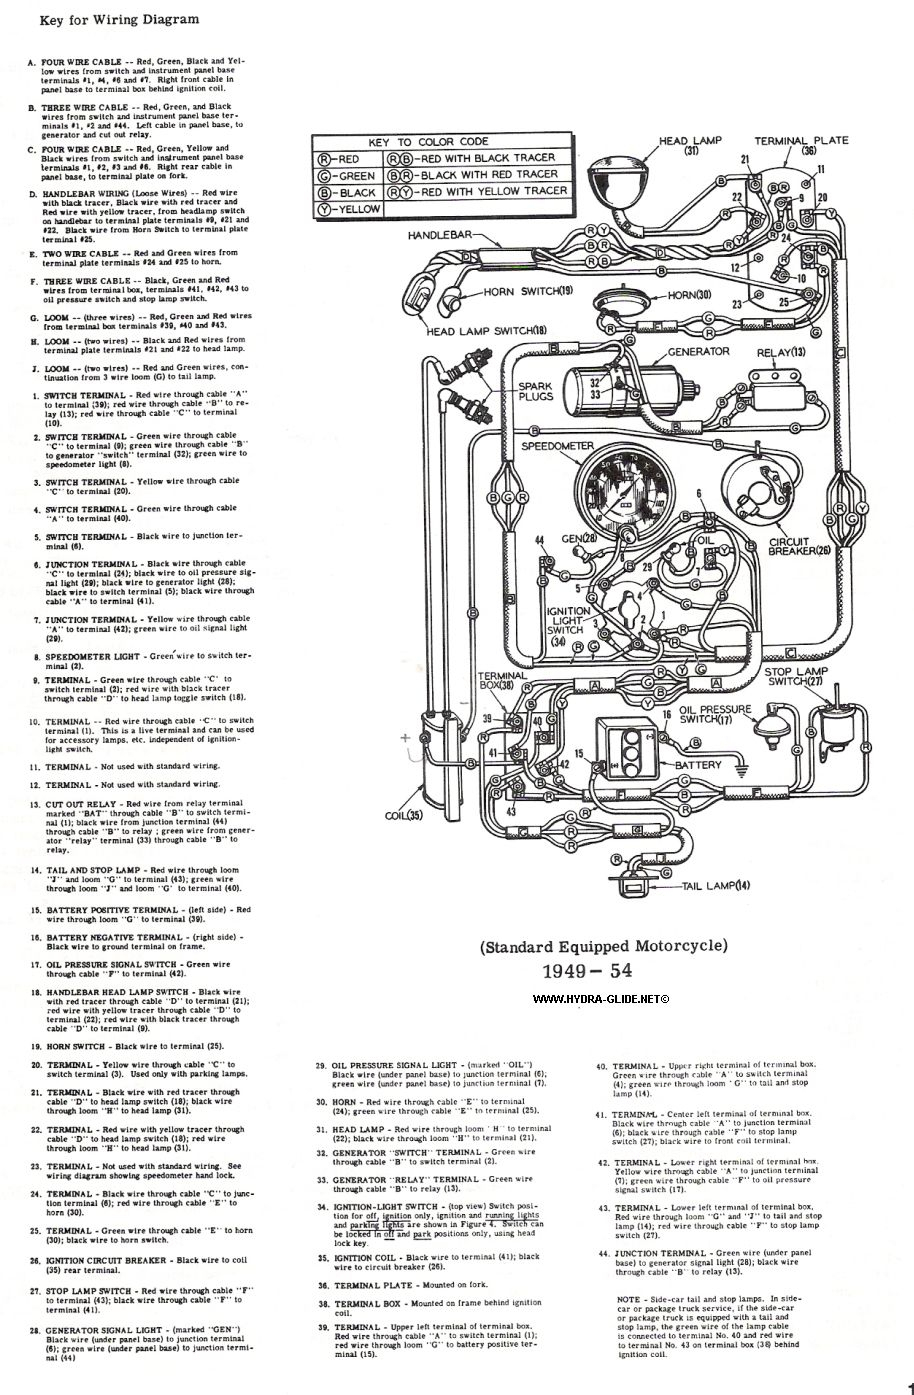 12 Volt Coil Wiring Diagram - Wiring Diagram Data Oreo - 12V Wiring Diagram